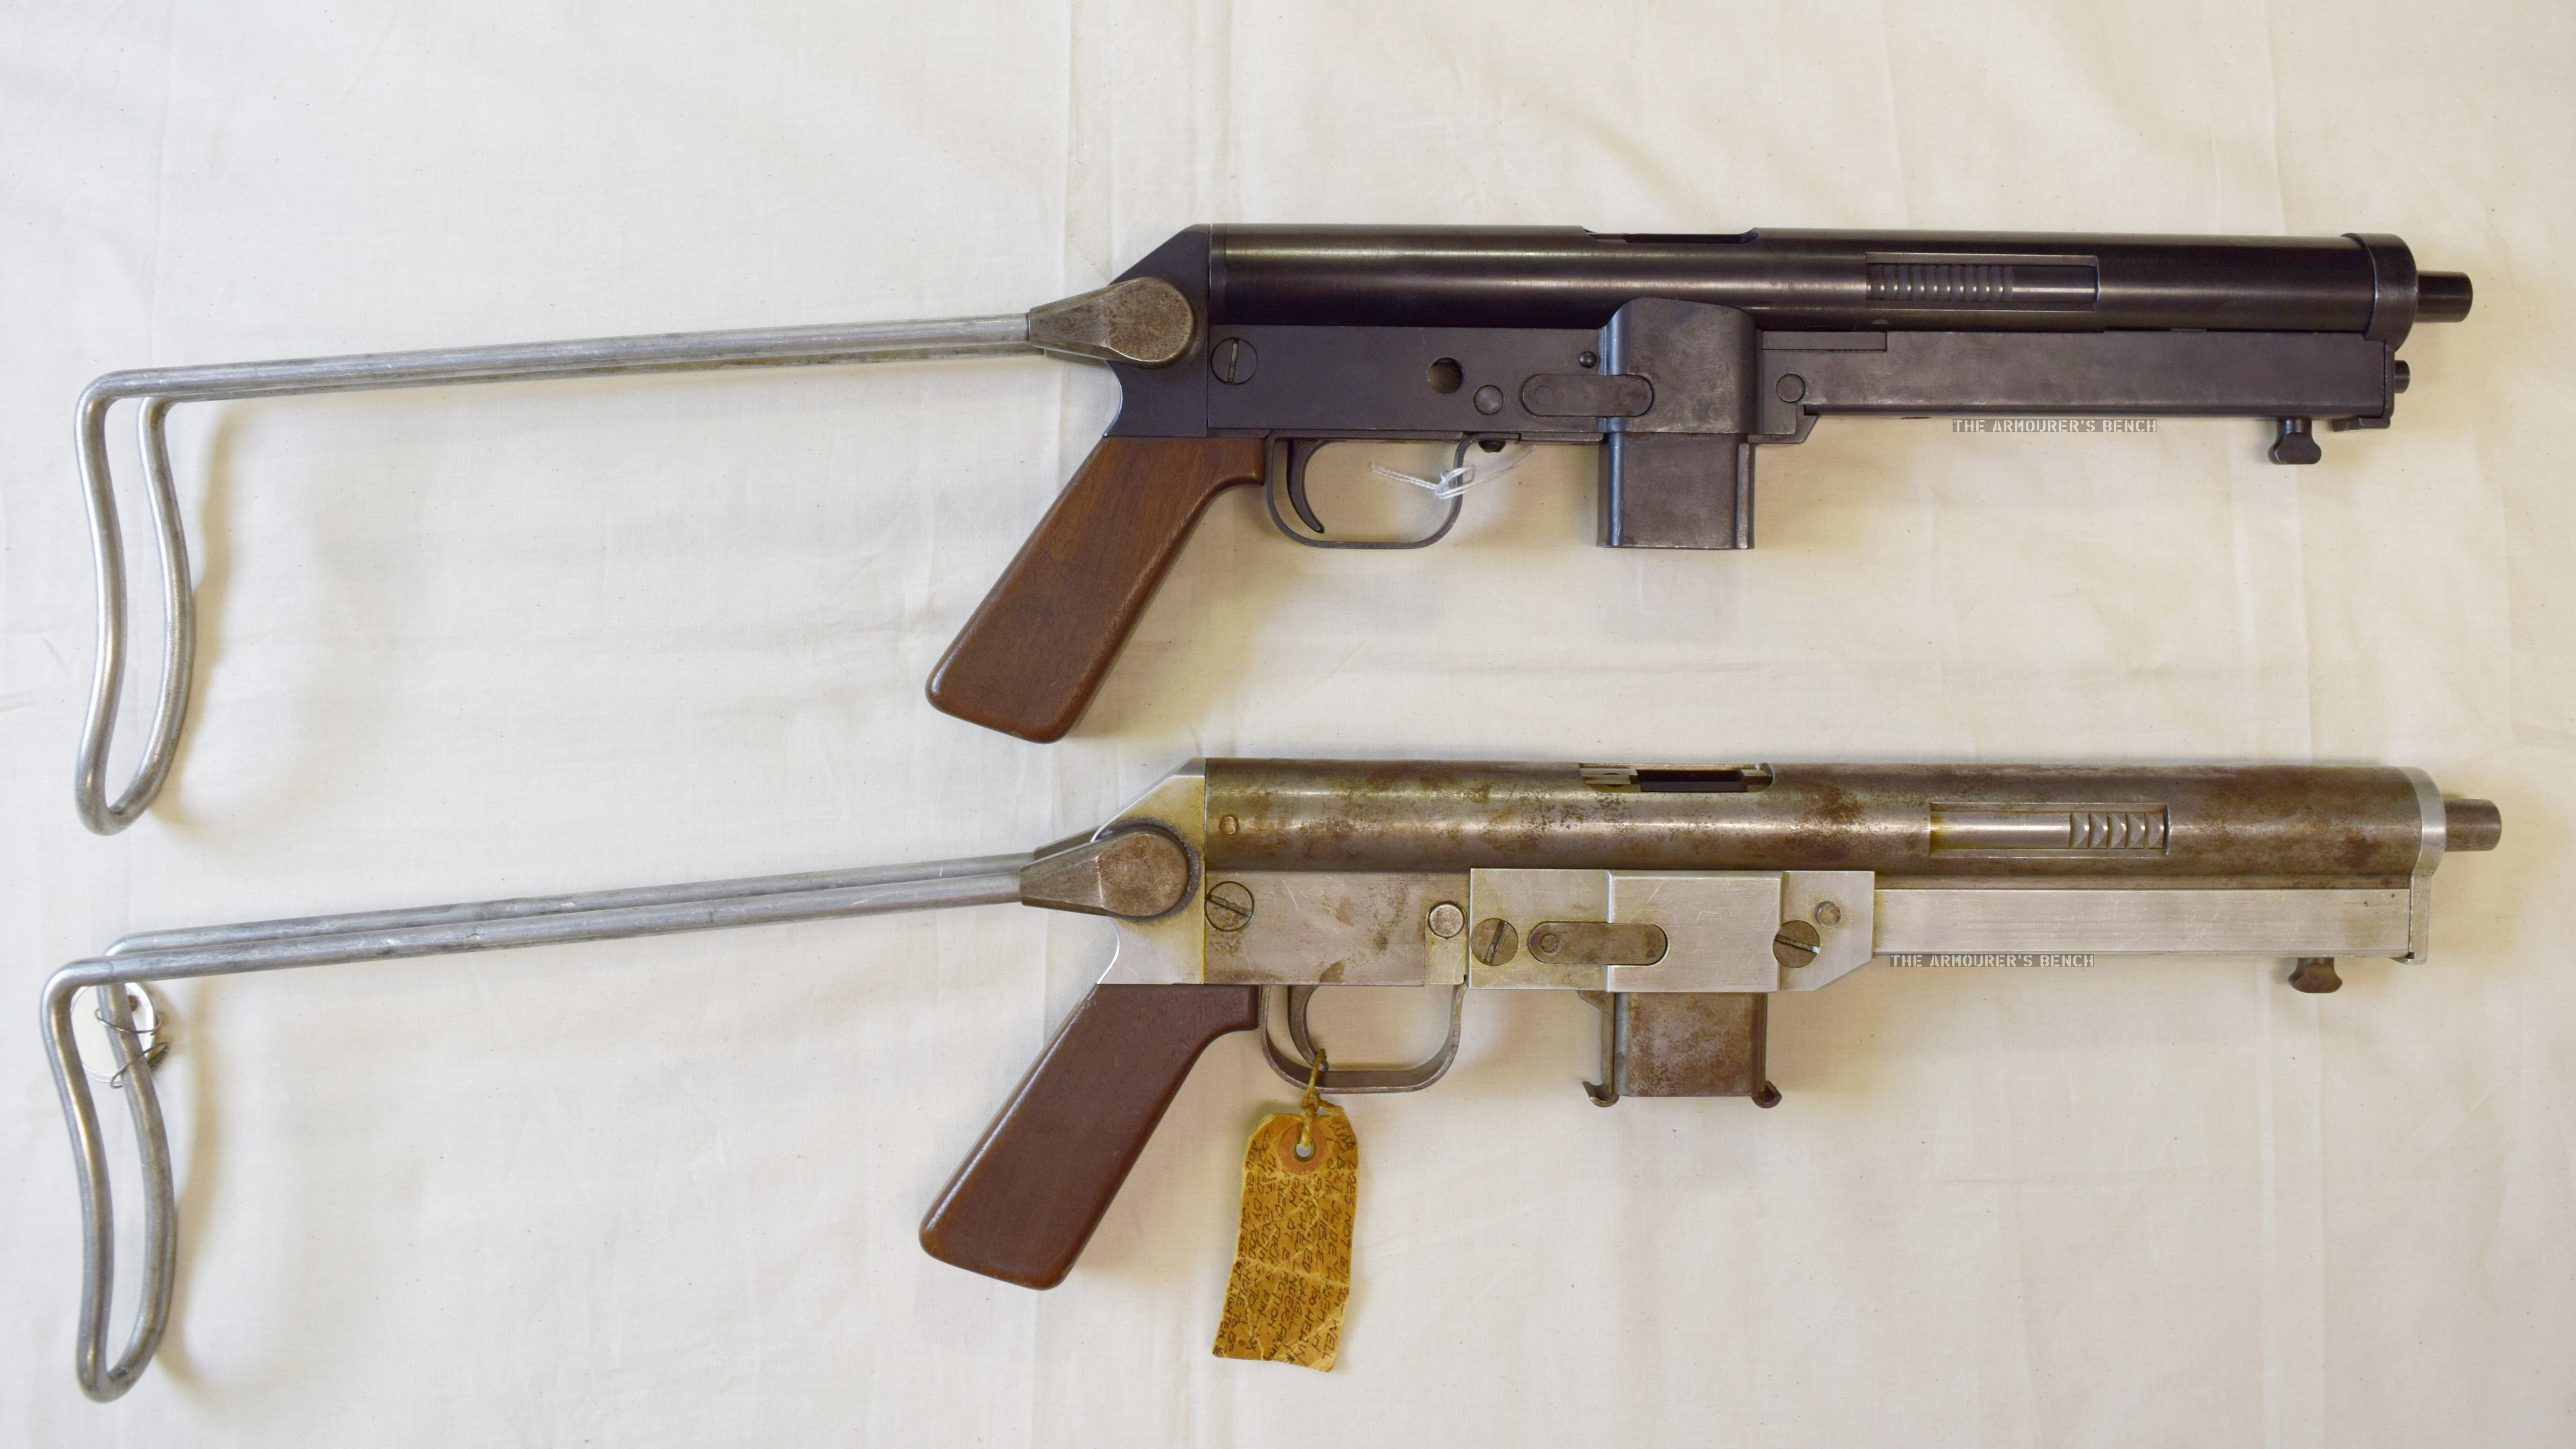 Right side 2 Winchester SMG prototypes